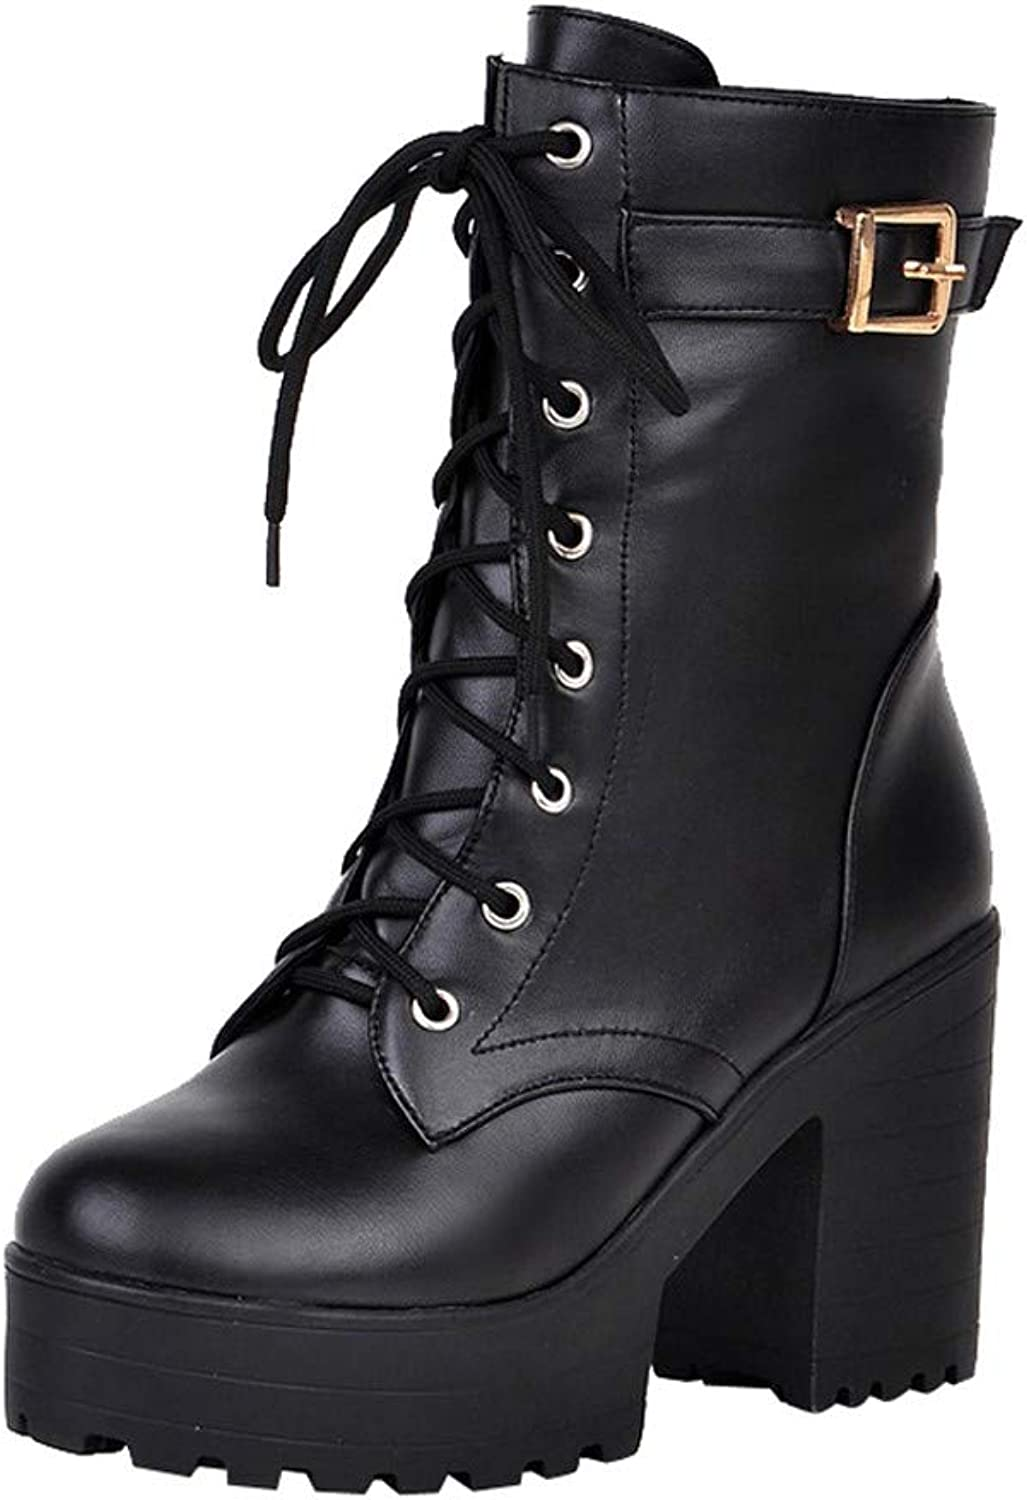 Fullfun Fashion Spring Autumn Platform Ankle Boots Women Lace Up Thick Heel Martin Boots Ladies Worker Boots Black